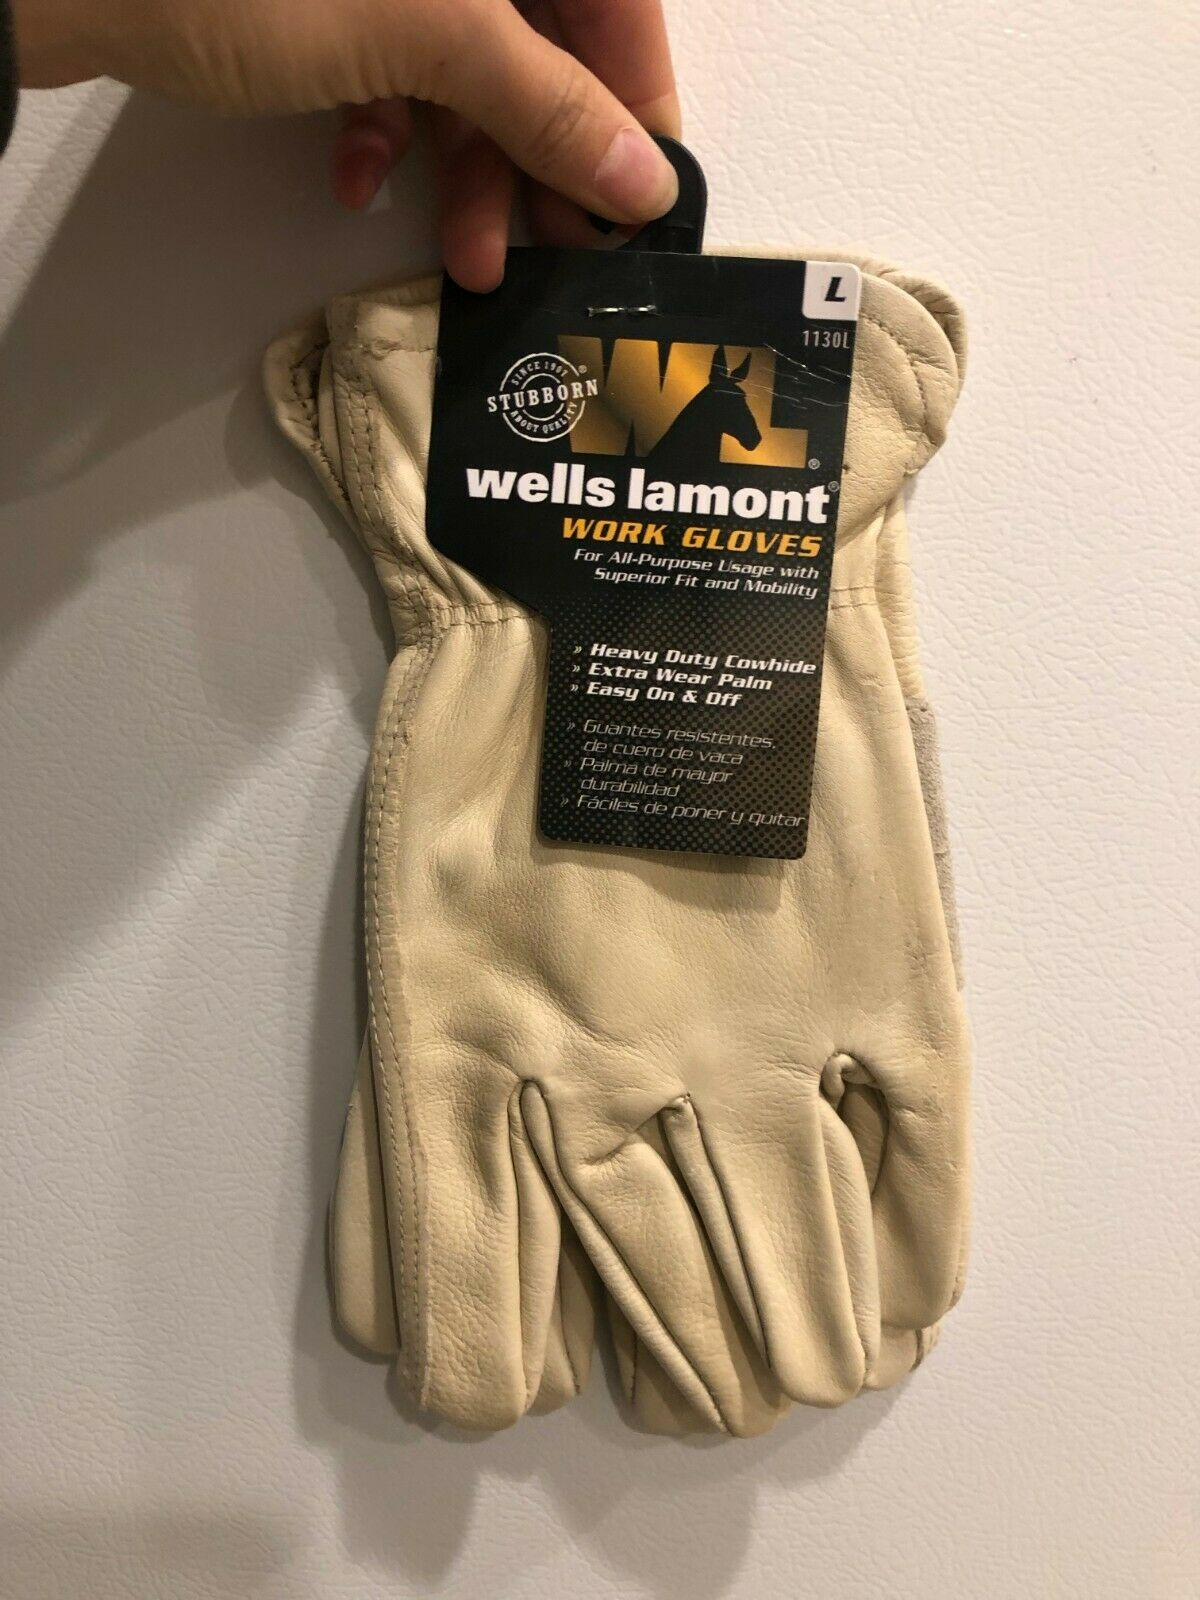 Wells Lamont 1130 Leather Work Gloves with Reinforced Palm Size X-Large 3 Pair